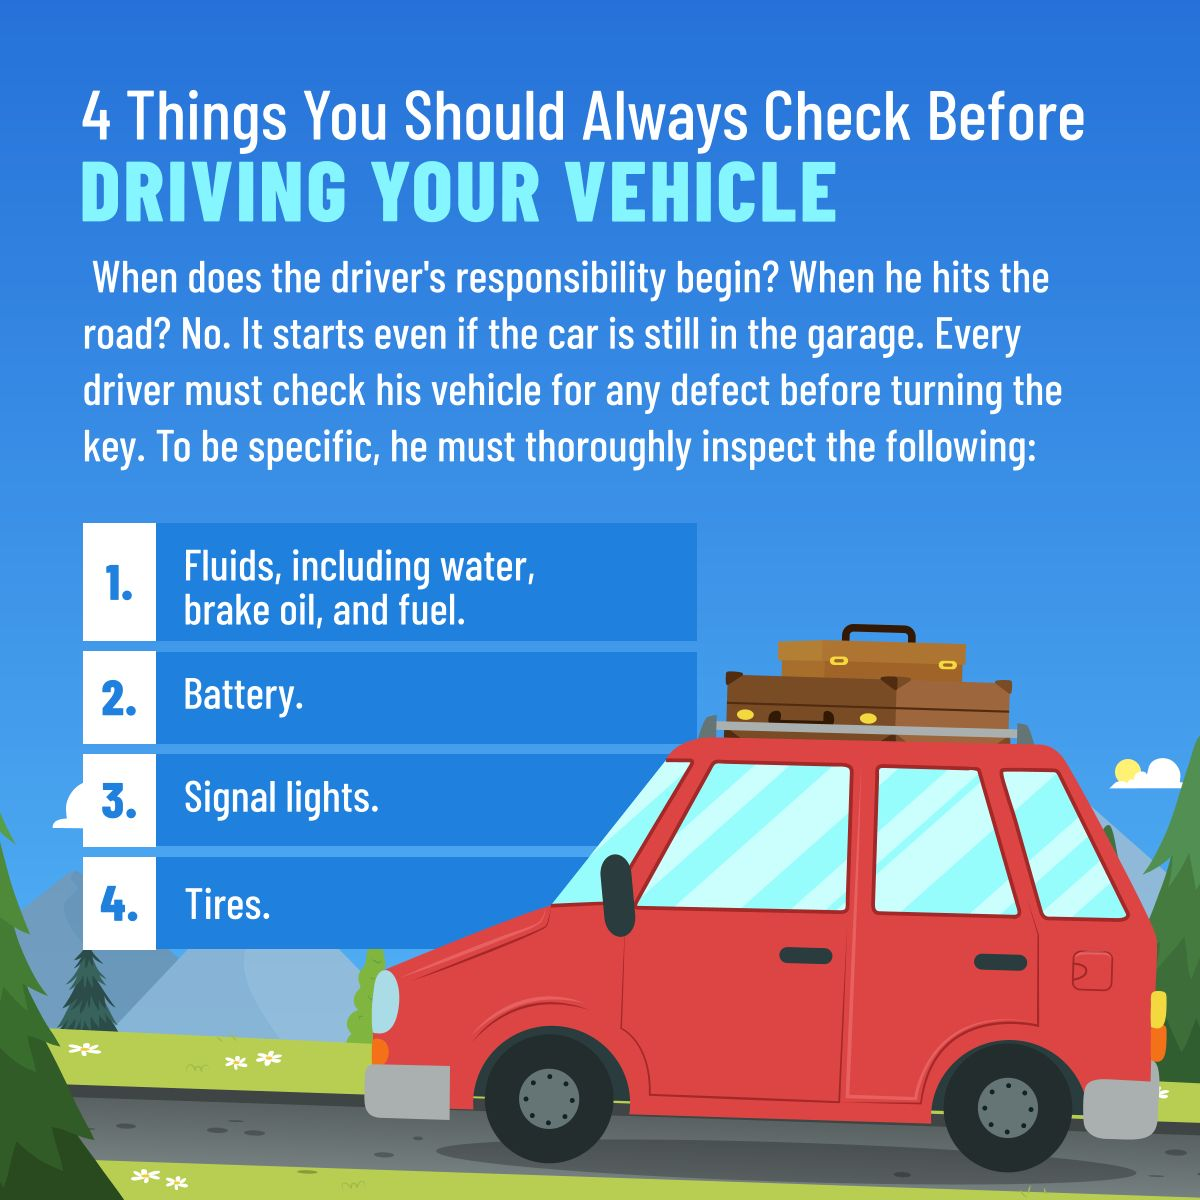 4 Things You Should Always Check Before Driving Your